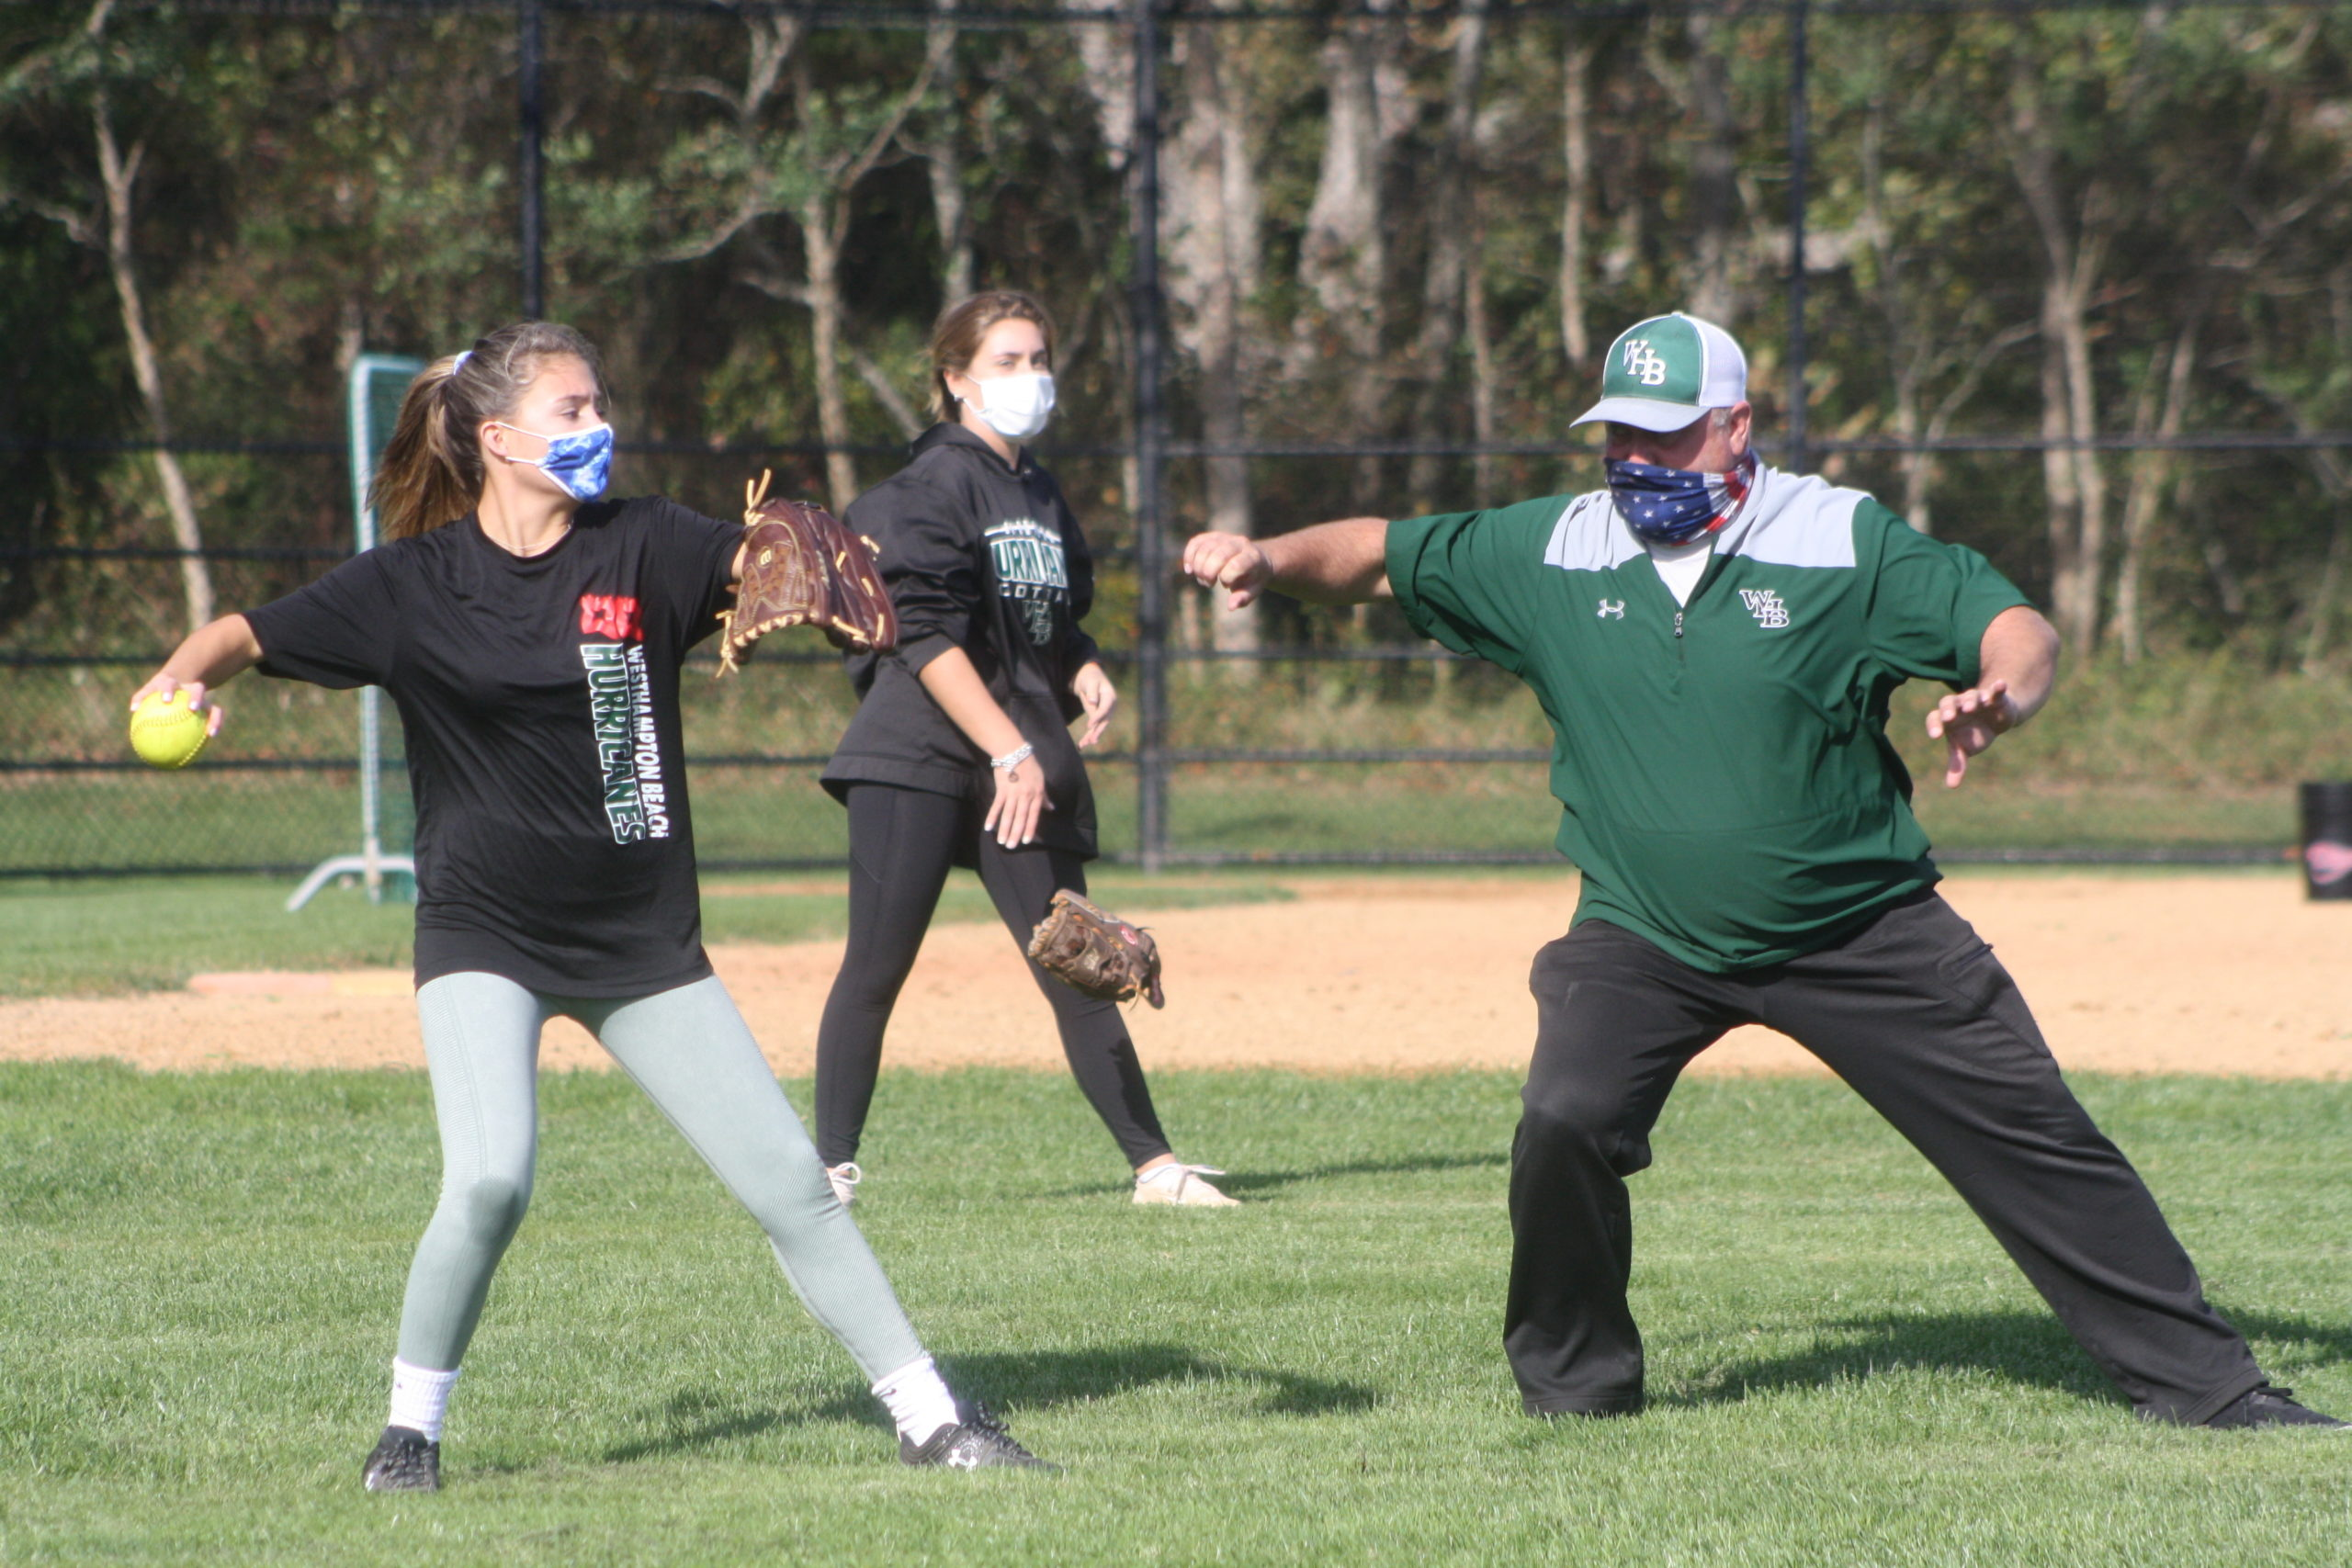 Westhampton Beach softball coach Jeff Doroski gives throwing instruction to Marcella Fitzgerald. CAILIN RILEY